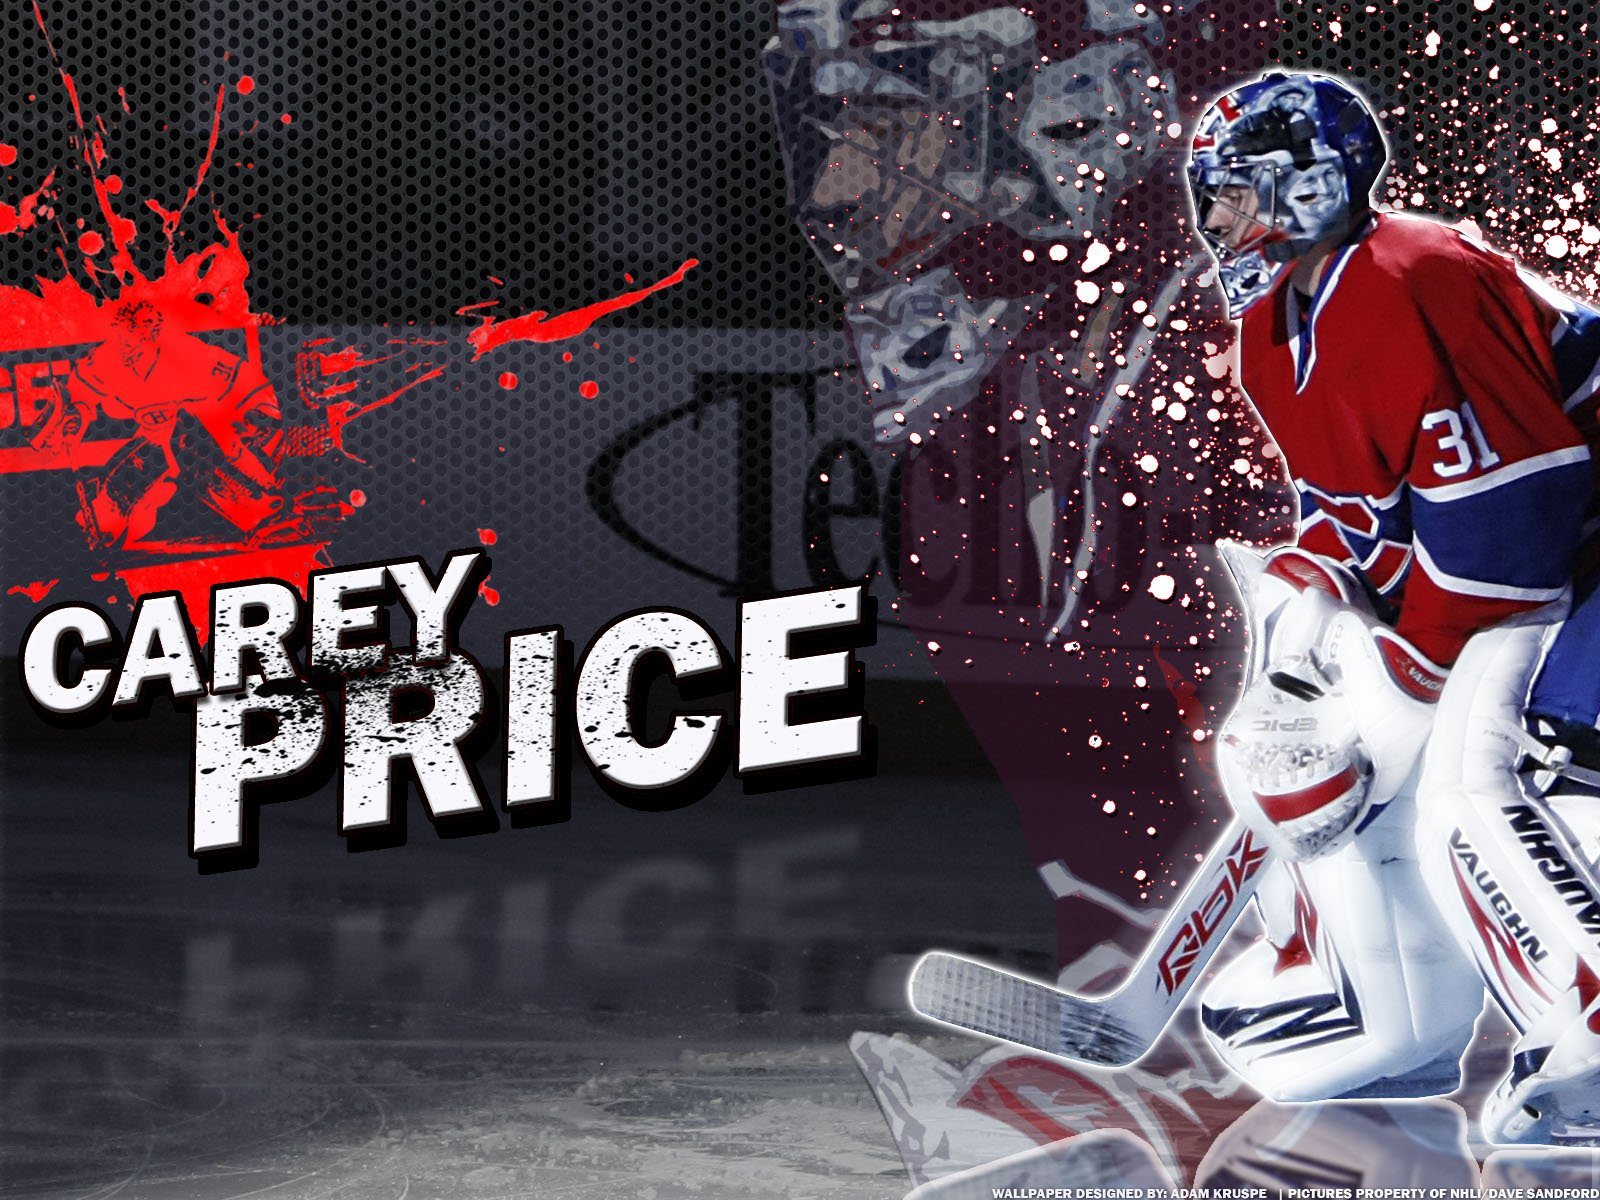 Top Wallpaper Logo Montreal Canadiens - Montreal-Canadiens-Carey-Price-montreal-canadiens-40373055-1600-1200  You Should Have_45661.jpg